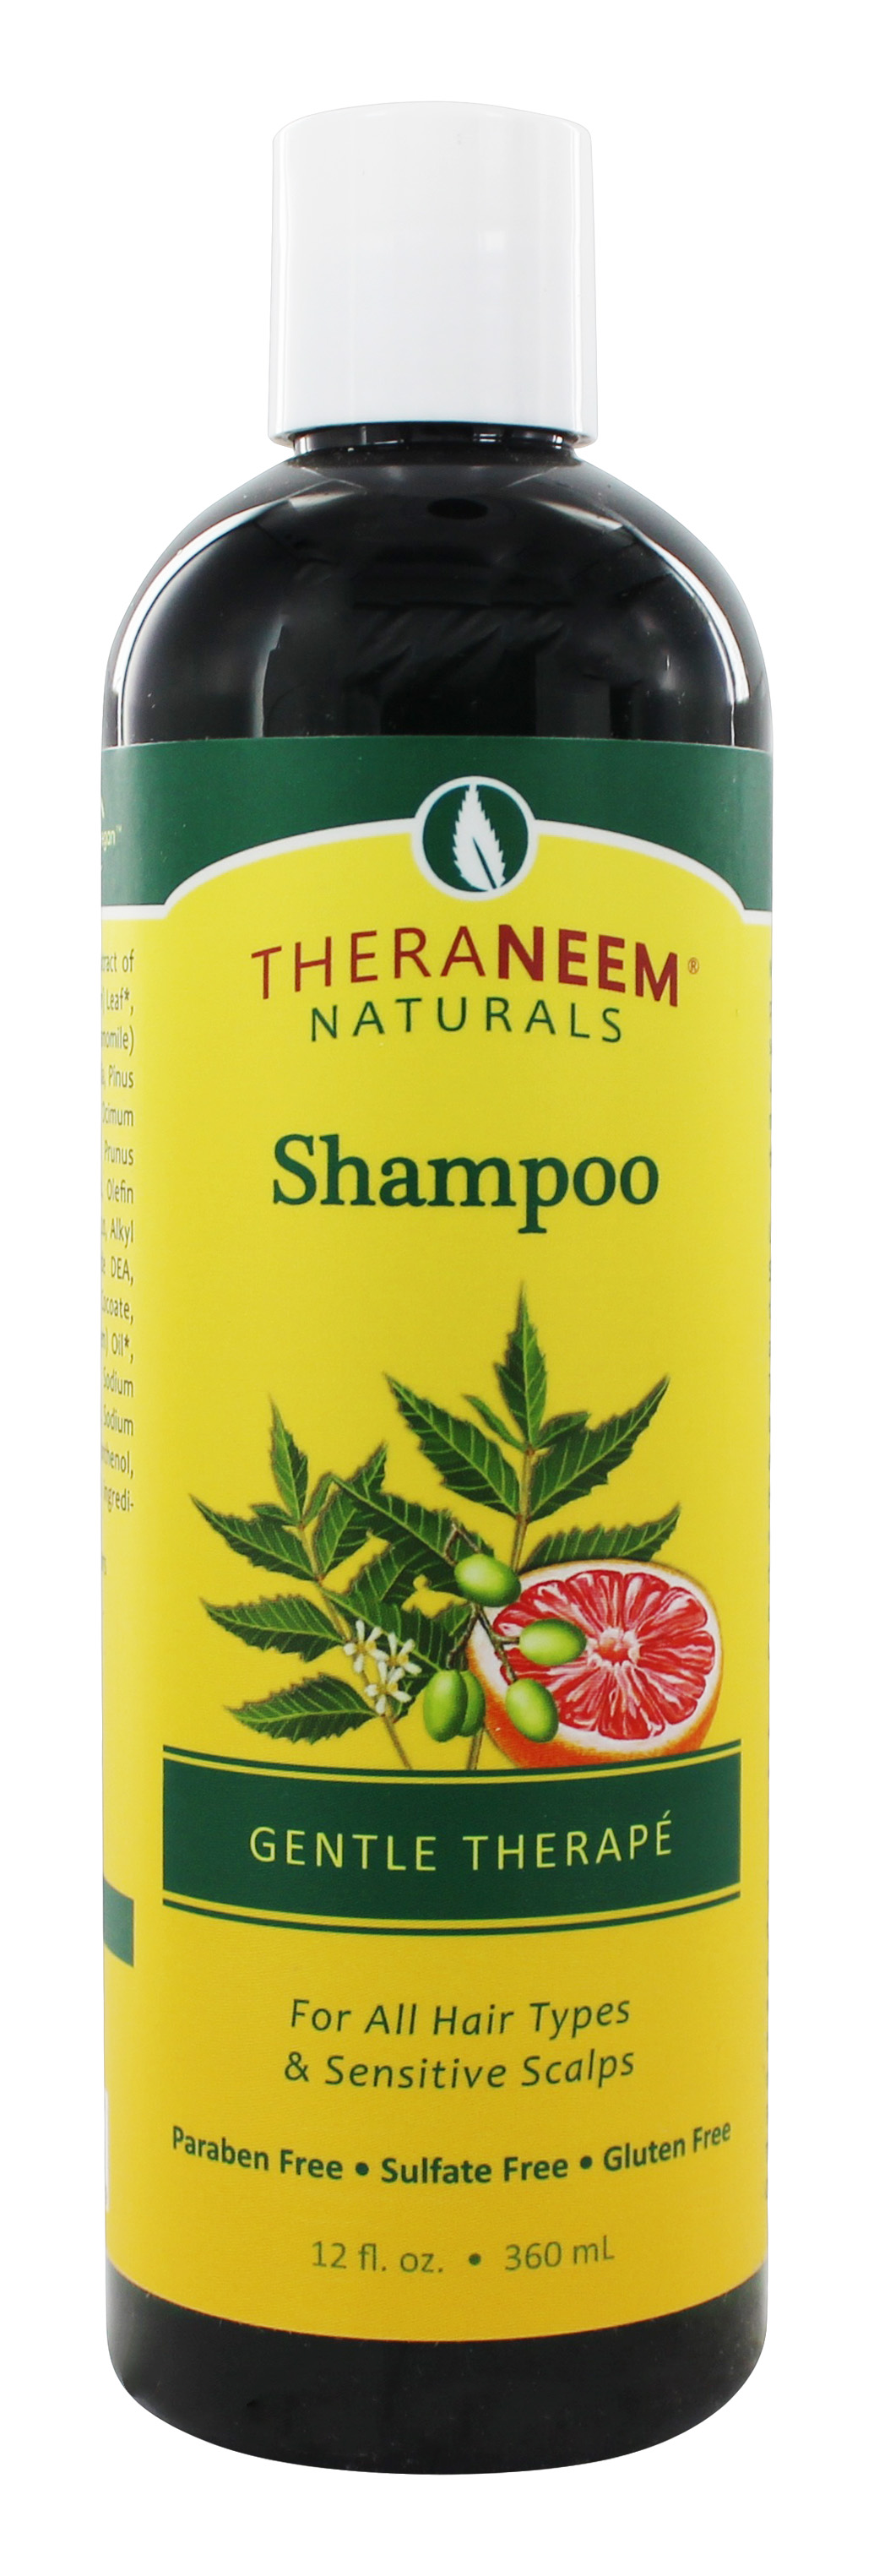 Image of Organix South - TheraNeem Organix Shampoo Gentle Therape - 12 oz.